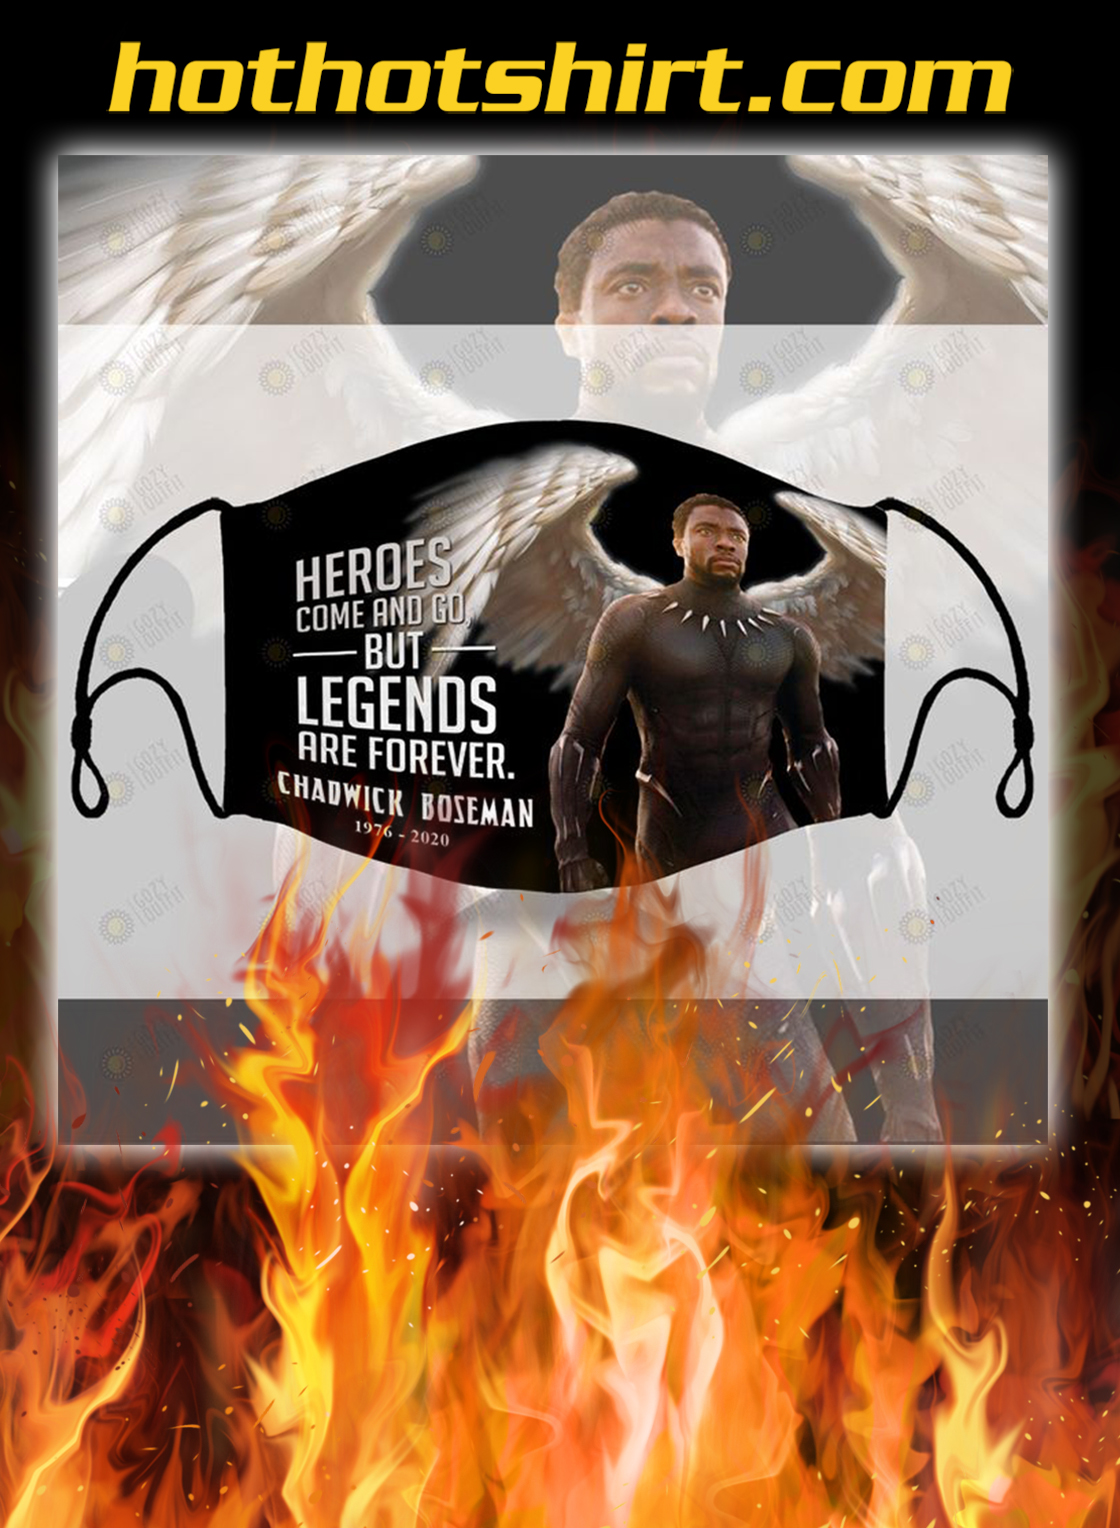 Chadwick boseman heroes come and go but legends are forever face mask - pic 1